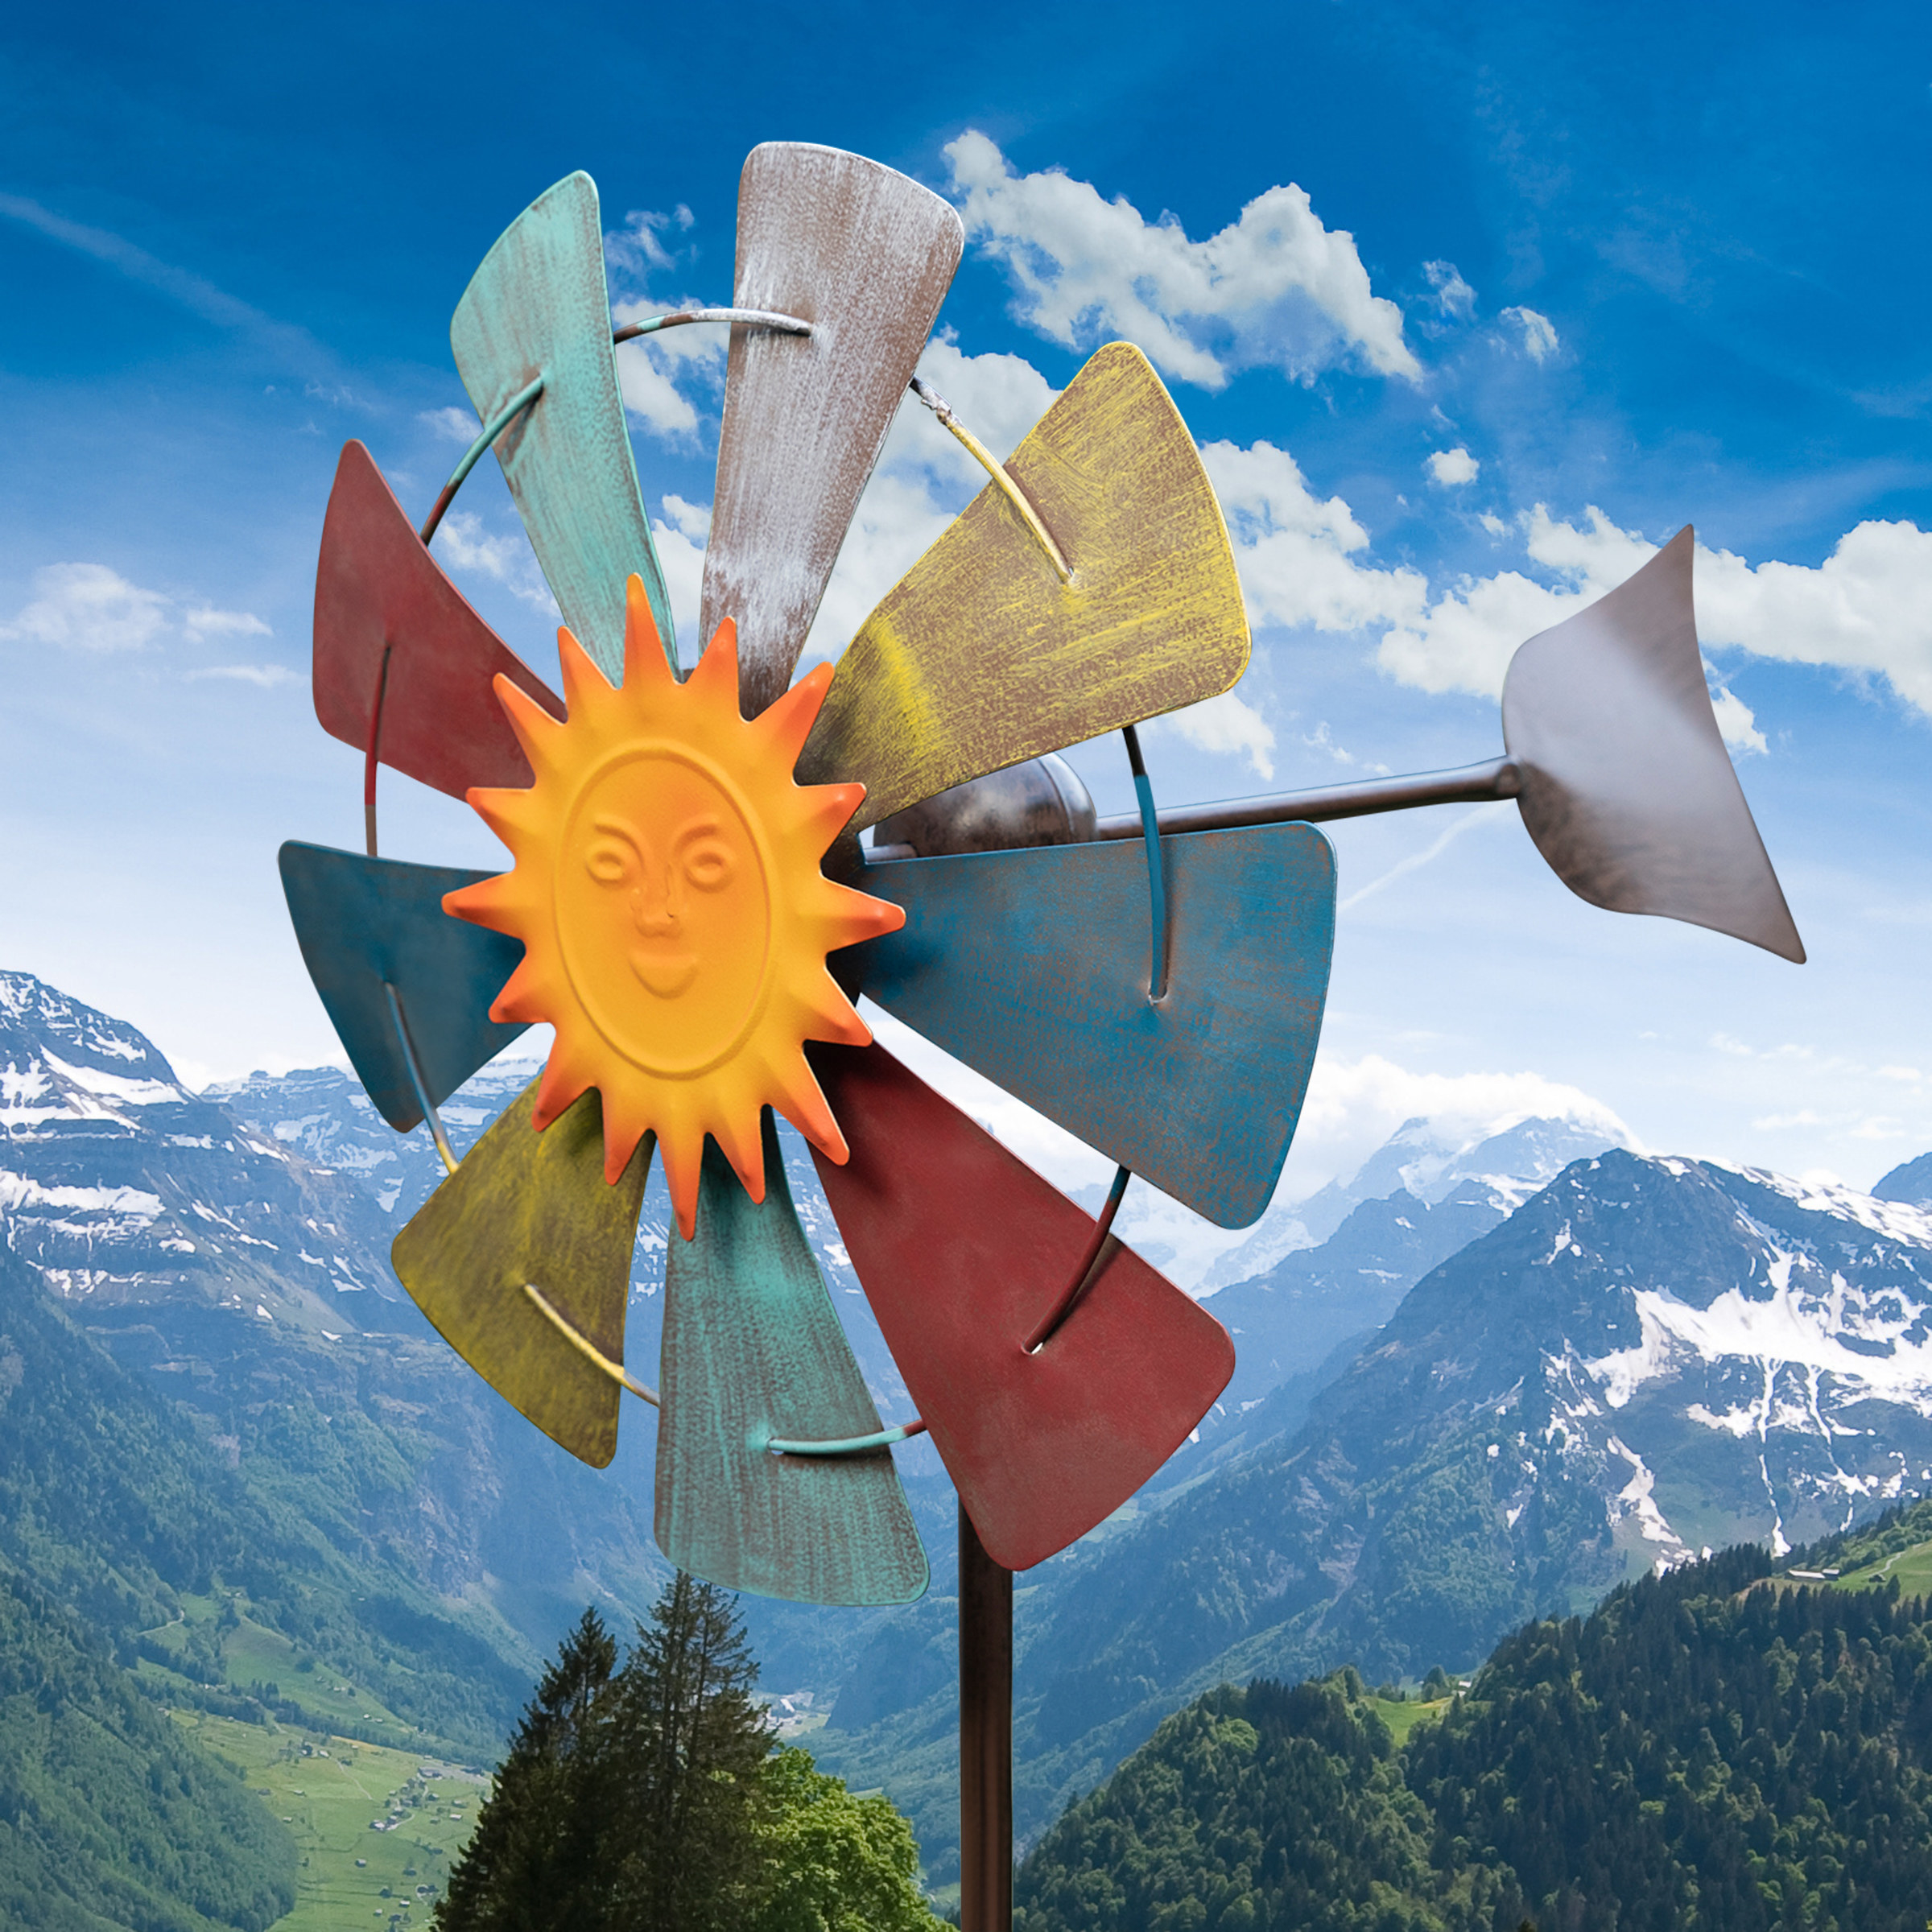 A multi-colored windmill with a smiling sun at the center